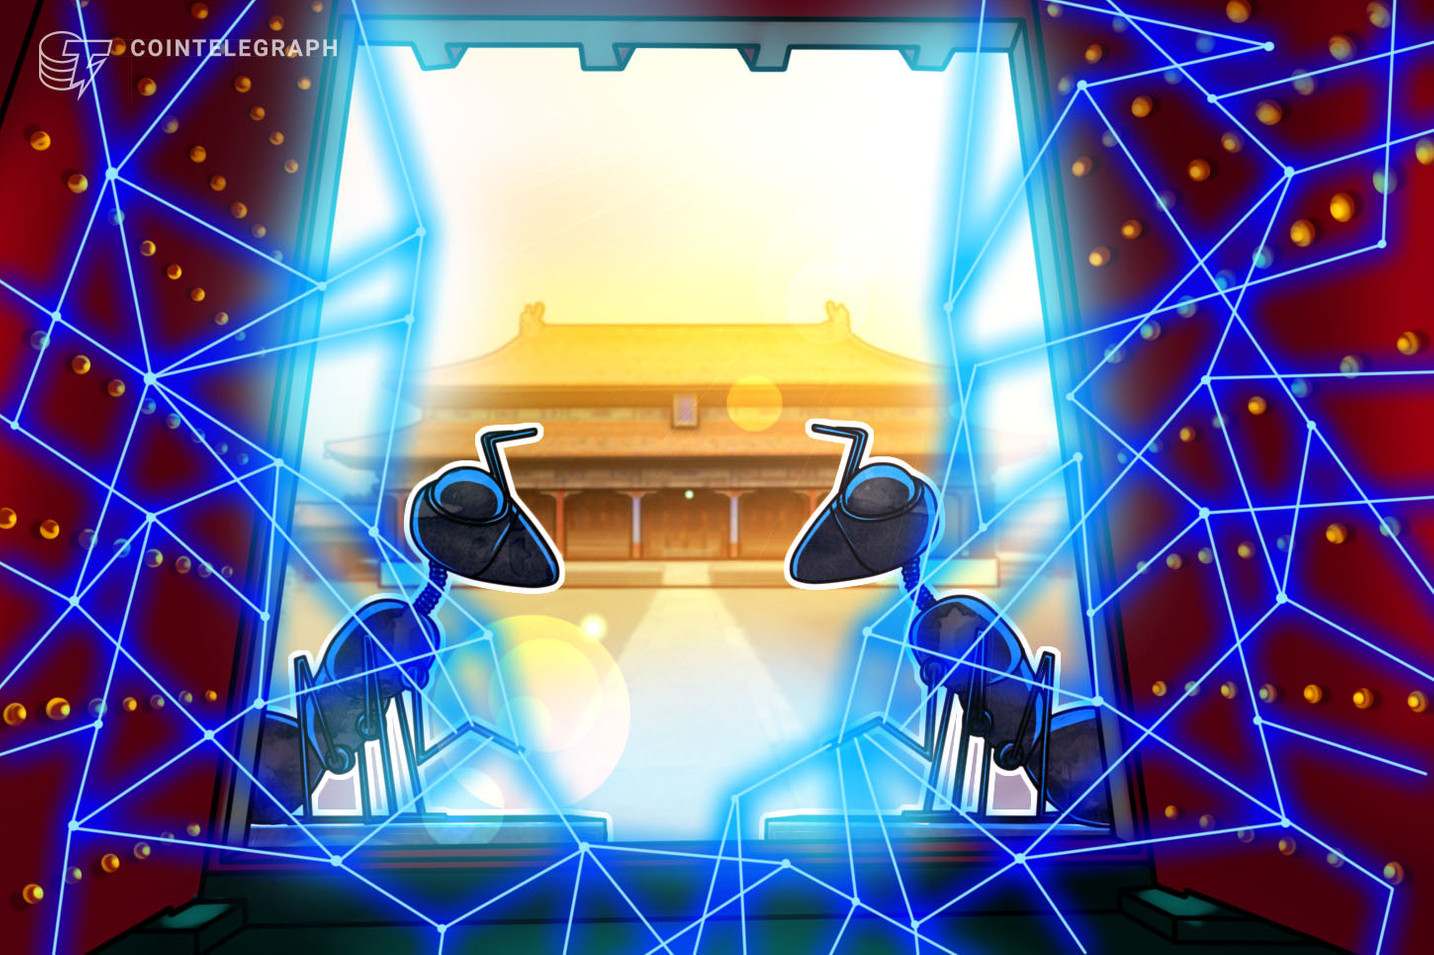 These China-based notaries are using the Blockchain to manage their client's cases